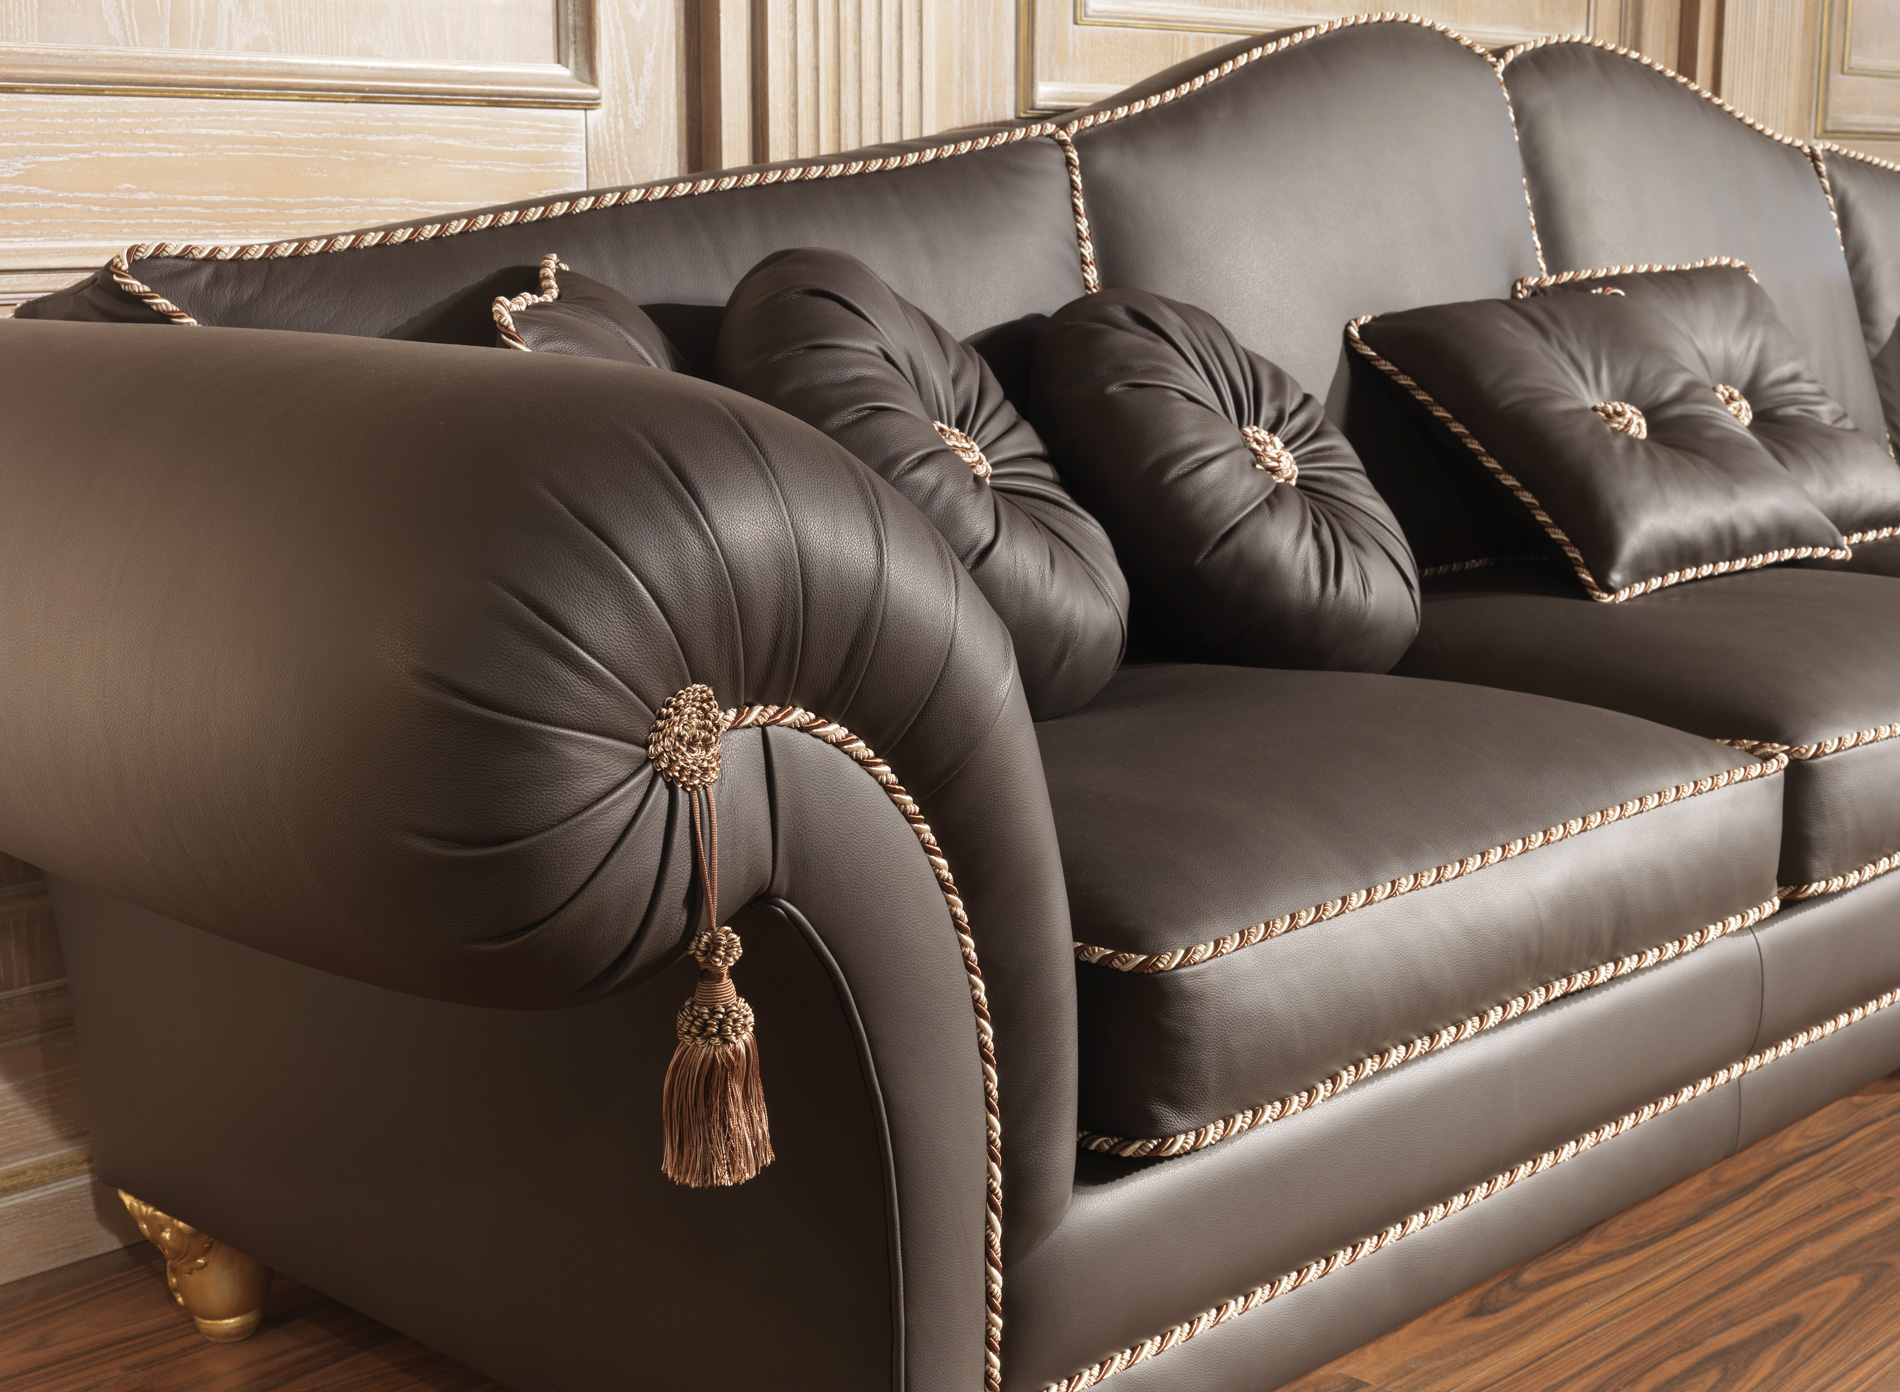 Luxury sofas in leather classic style modern beauty